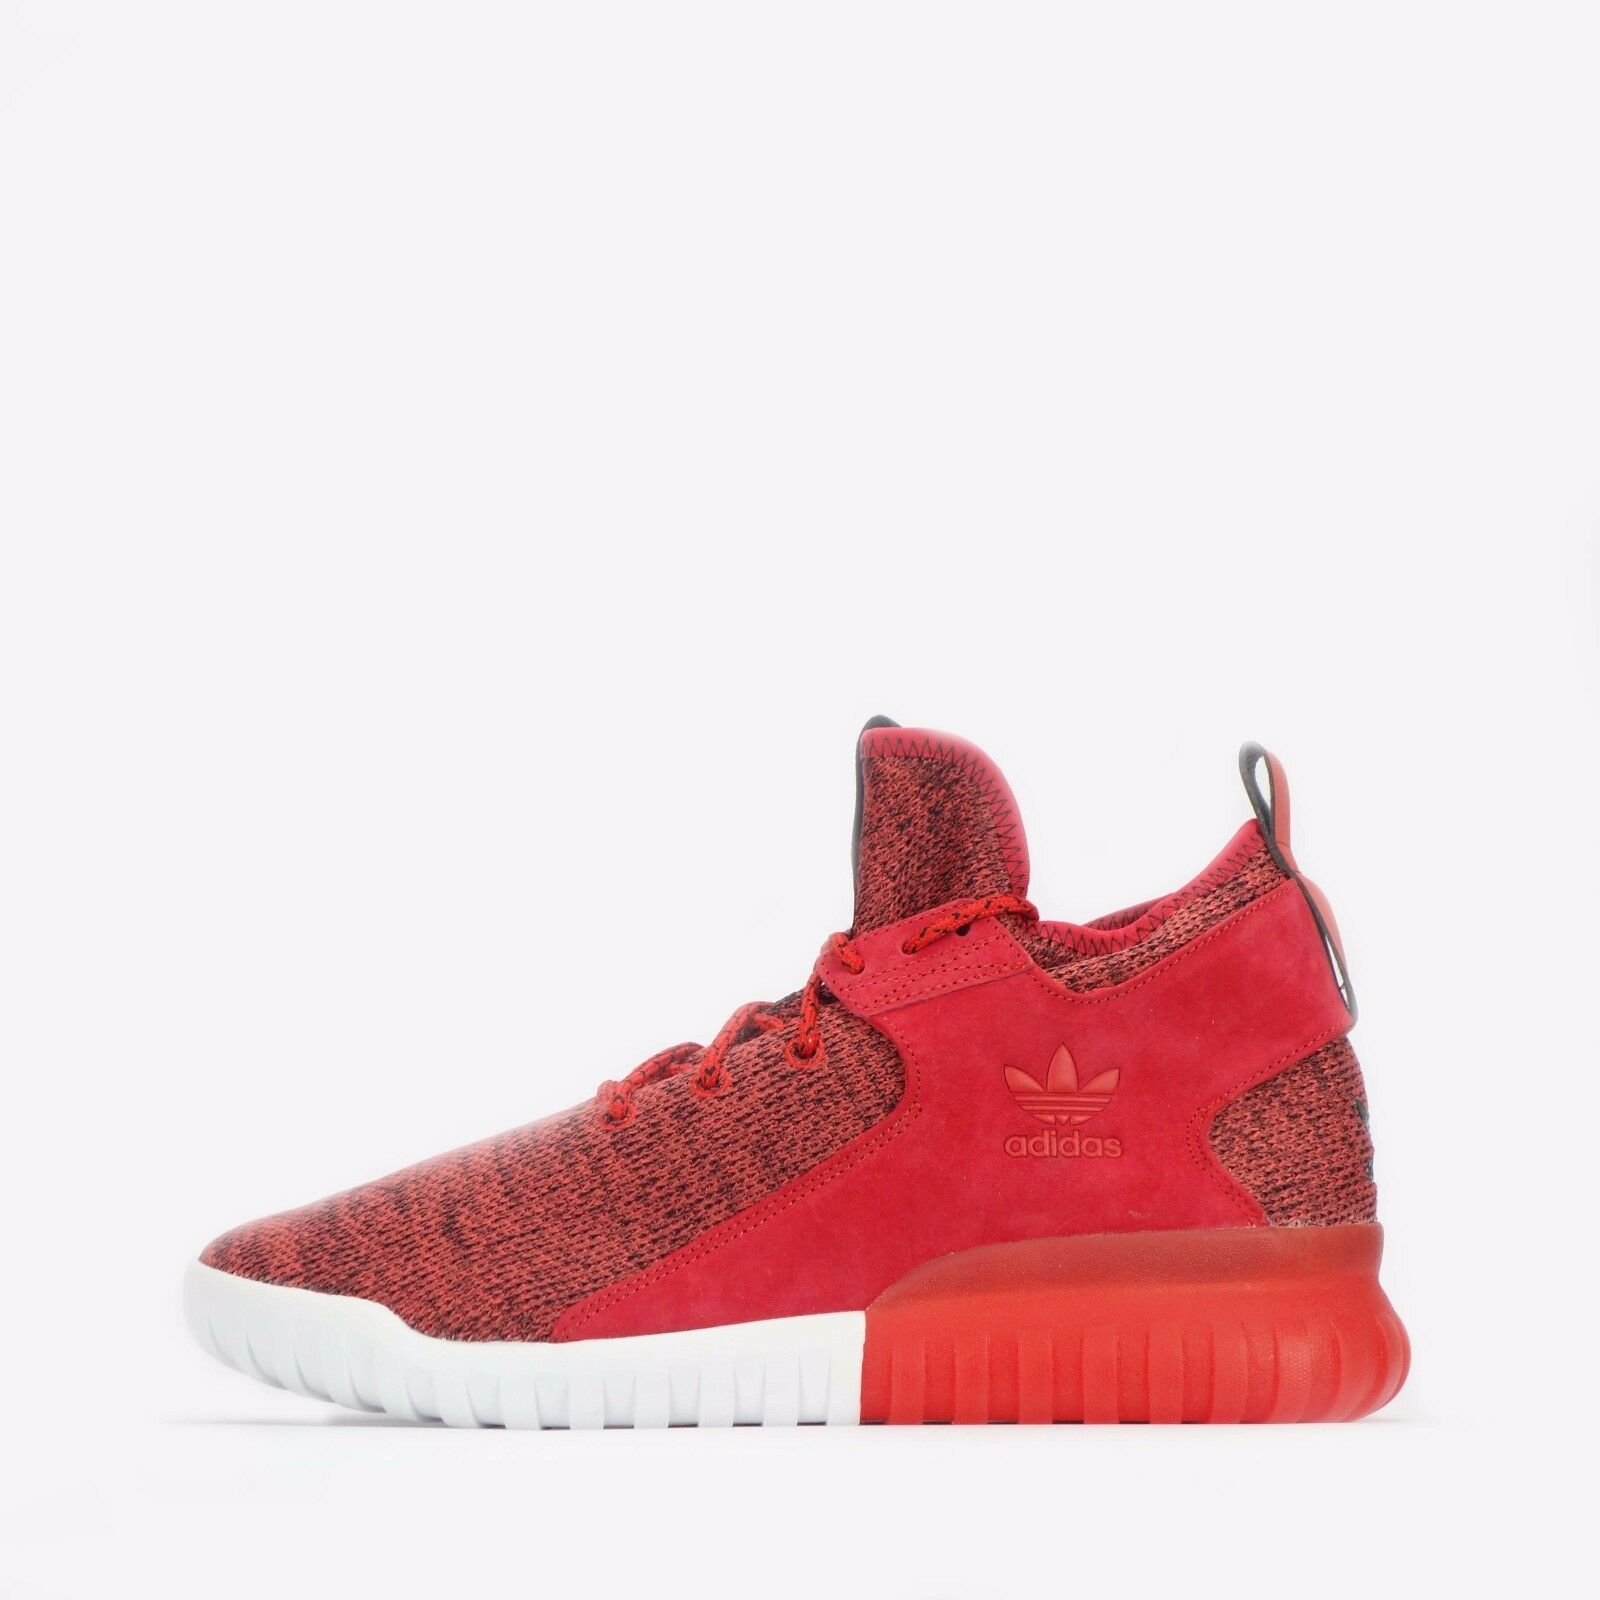 adidas Originals Tubular X Knit Men's shoes in Red